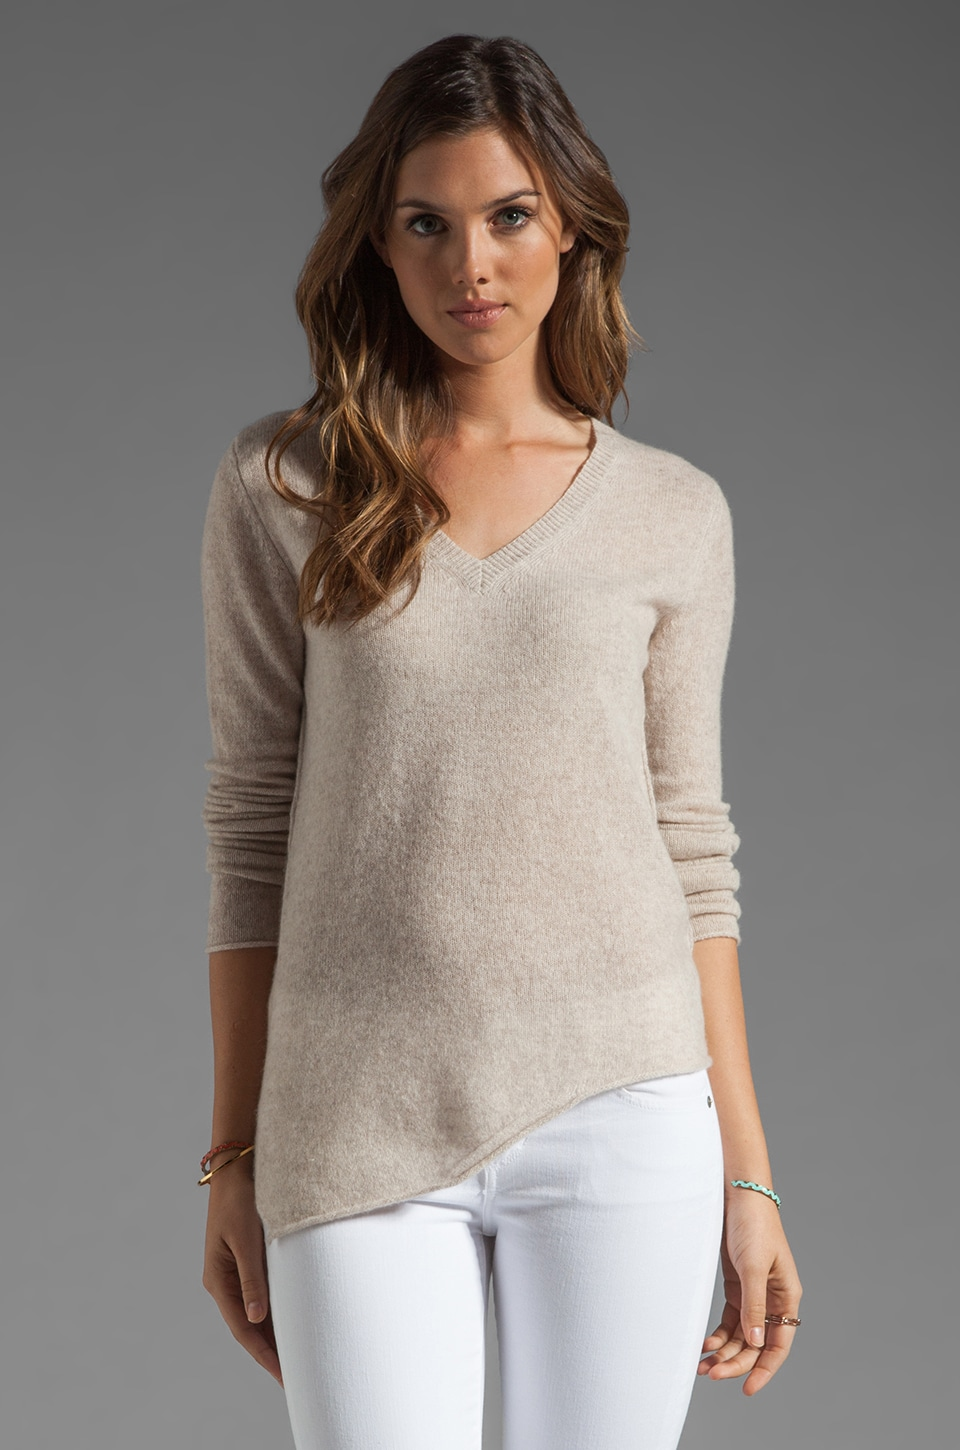 360 Sweater Lake Cashmere Sweater in Buff